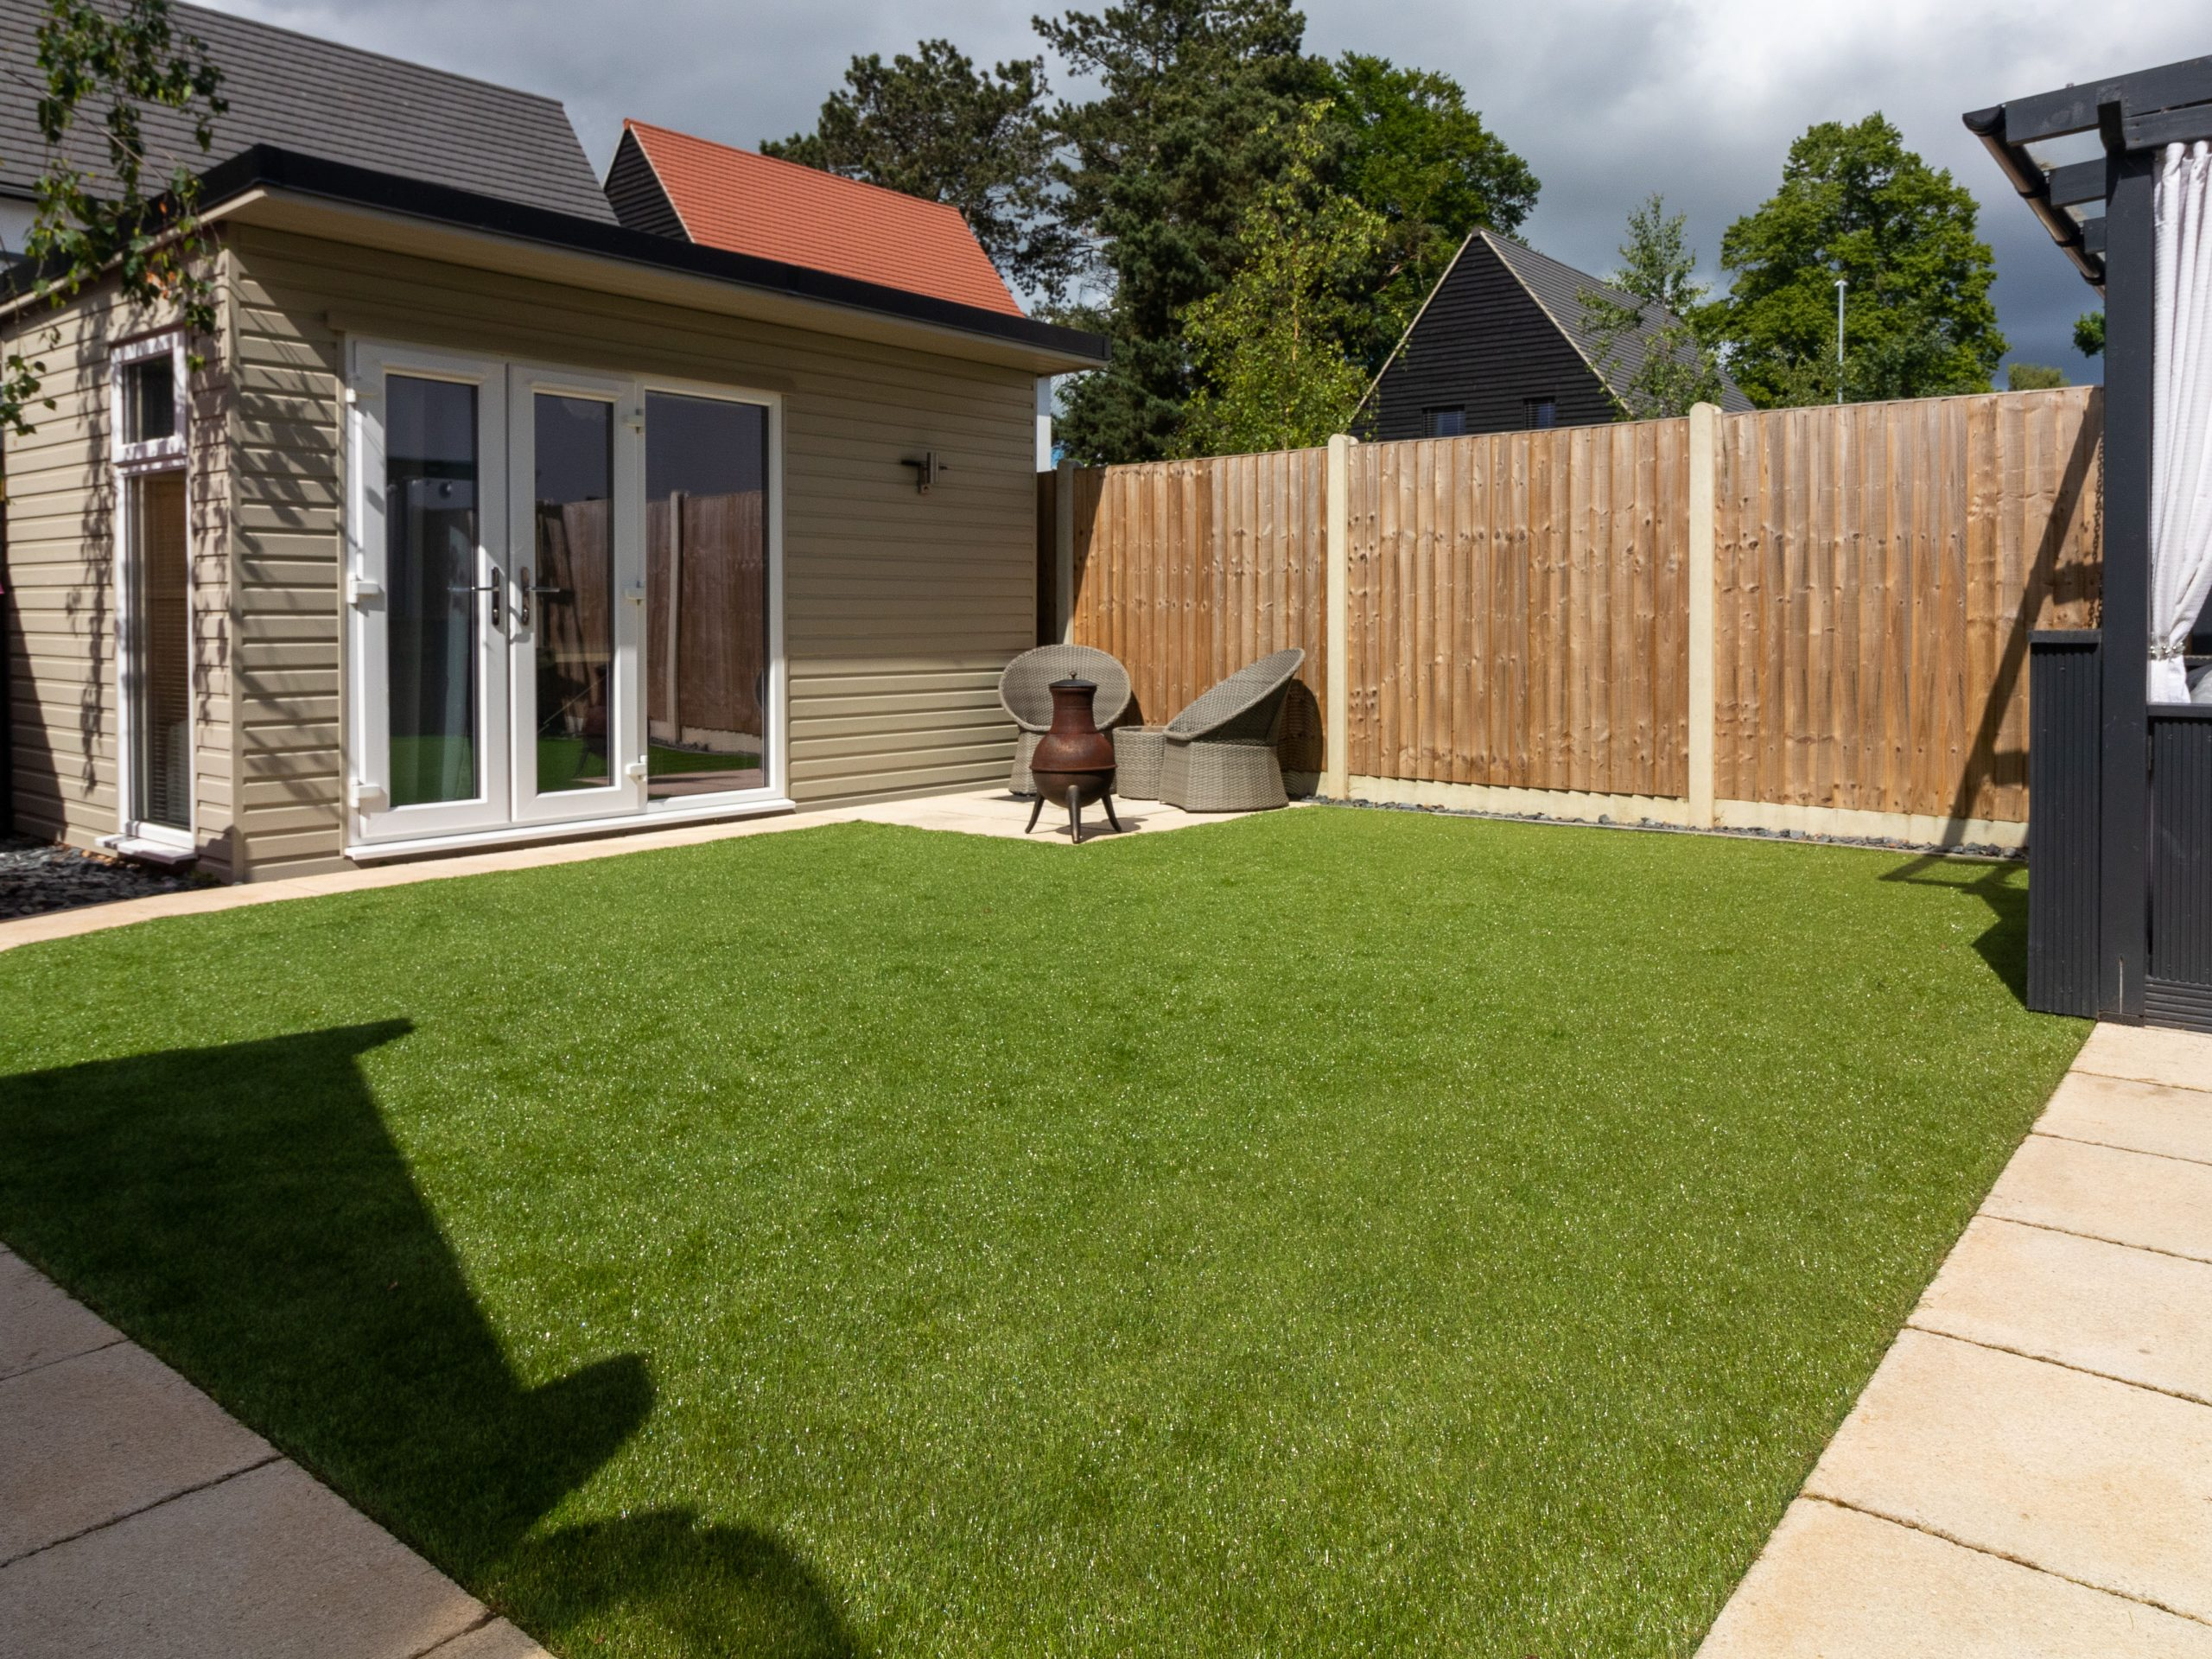 PermaLawn Artificial Grass